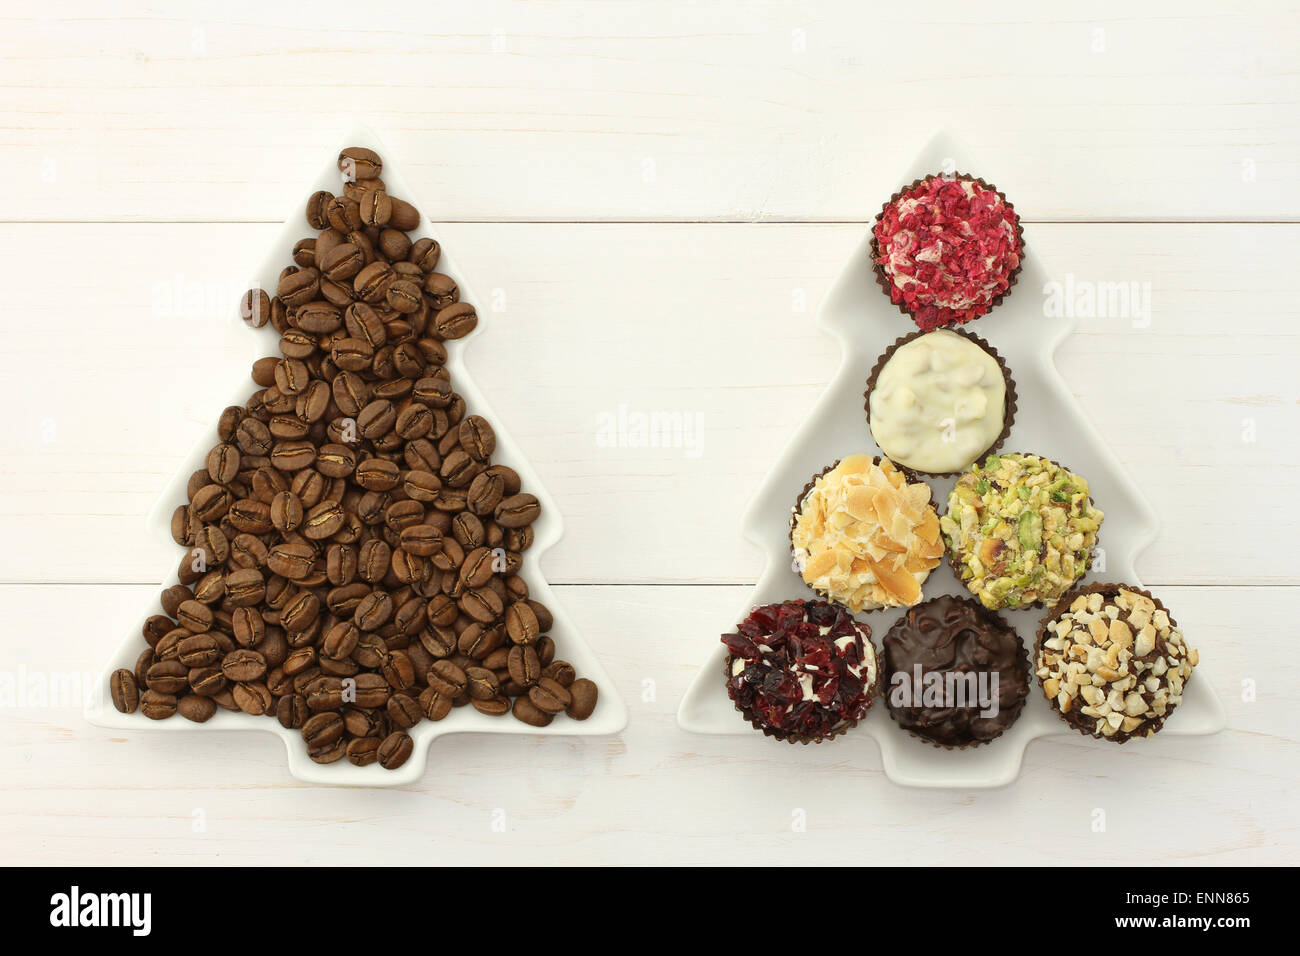 Two dish-spruces with roasted coffee beans  and set of chocolates on the white wooden background - Stock Image